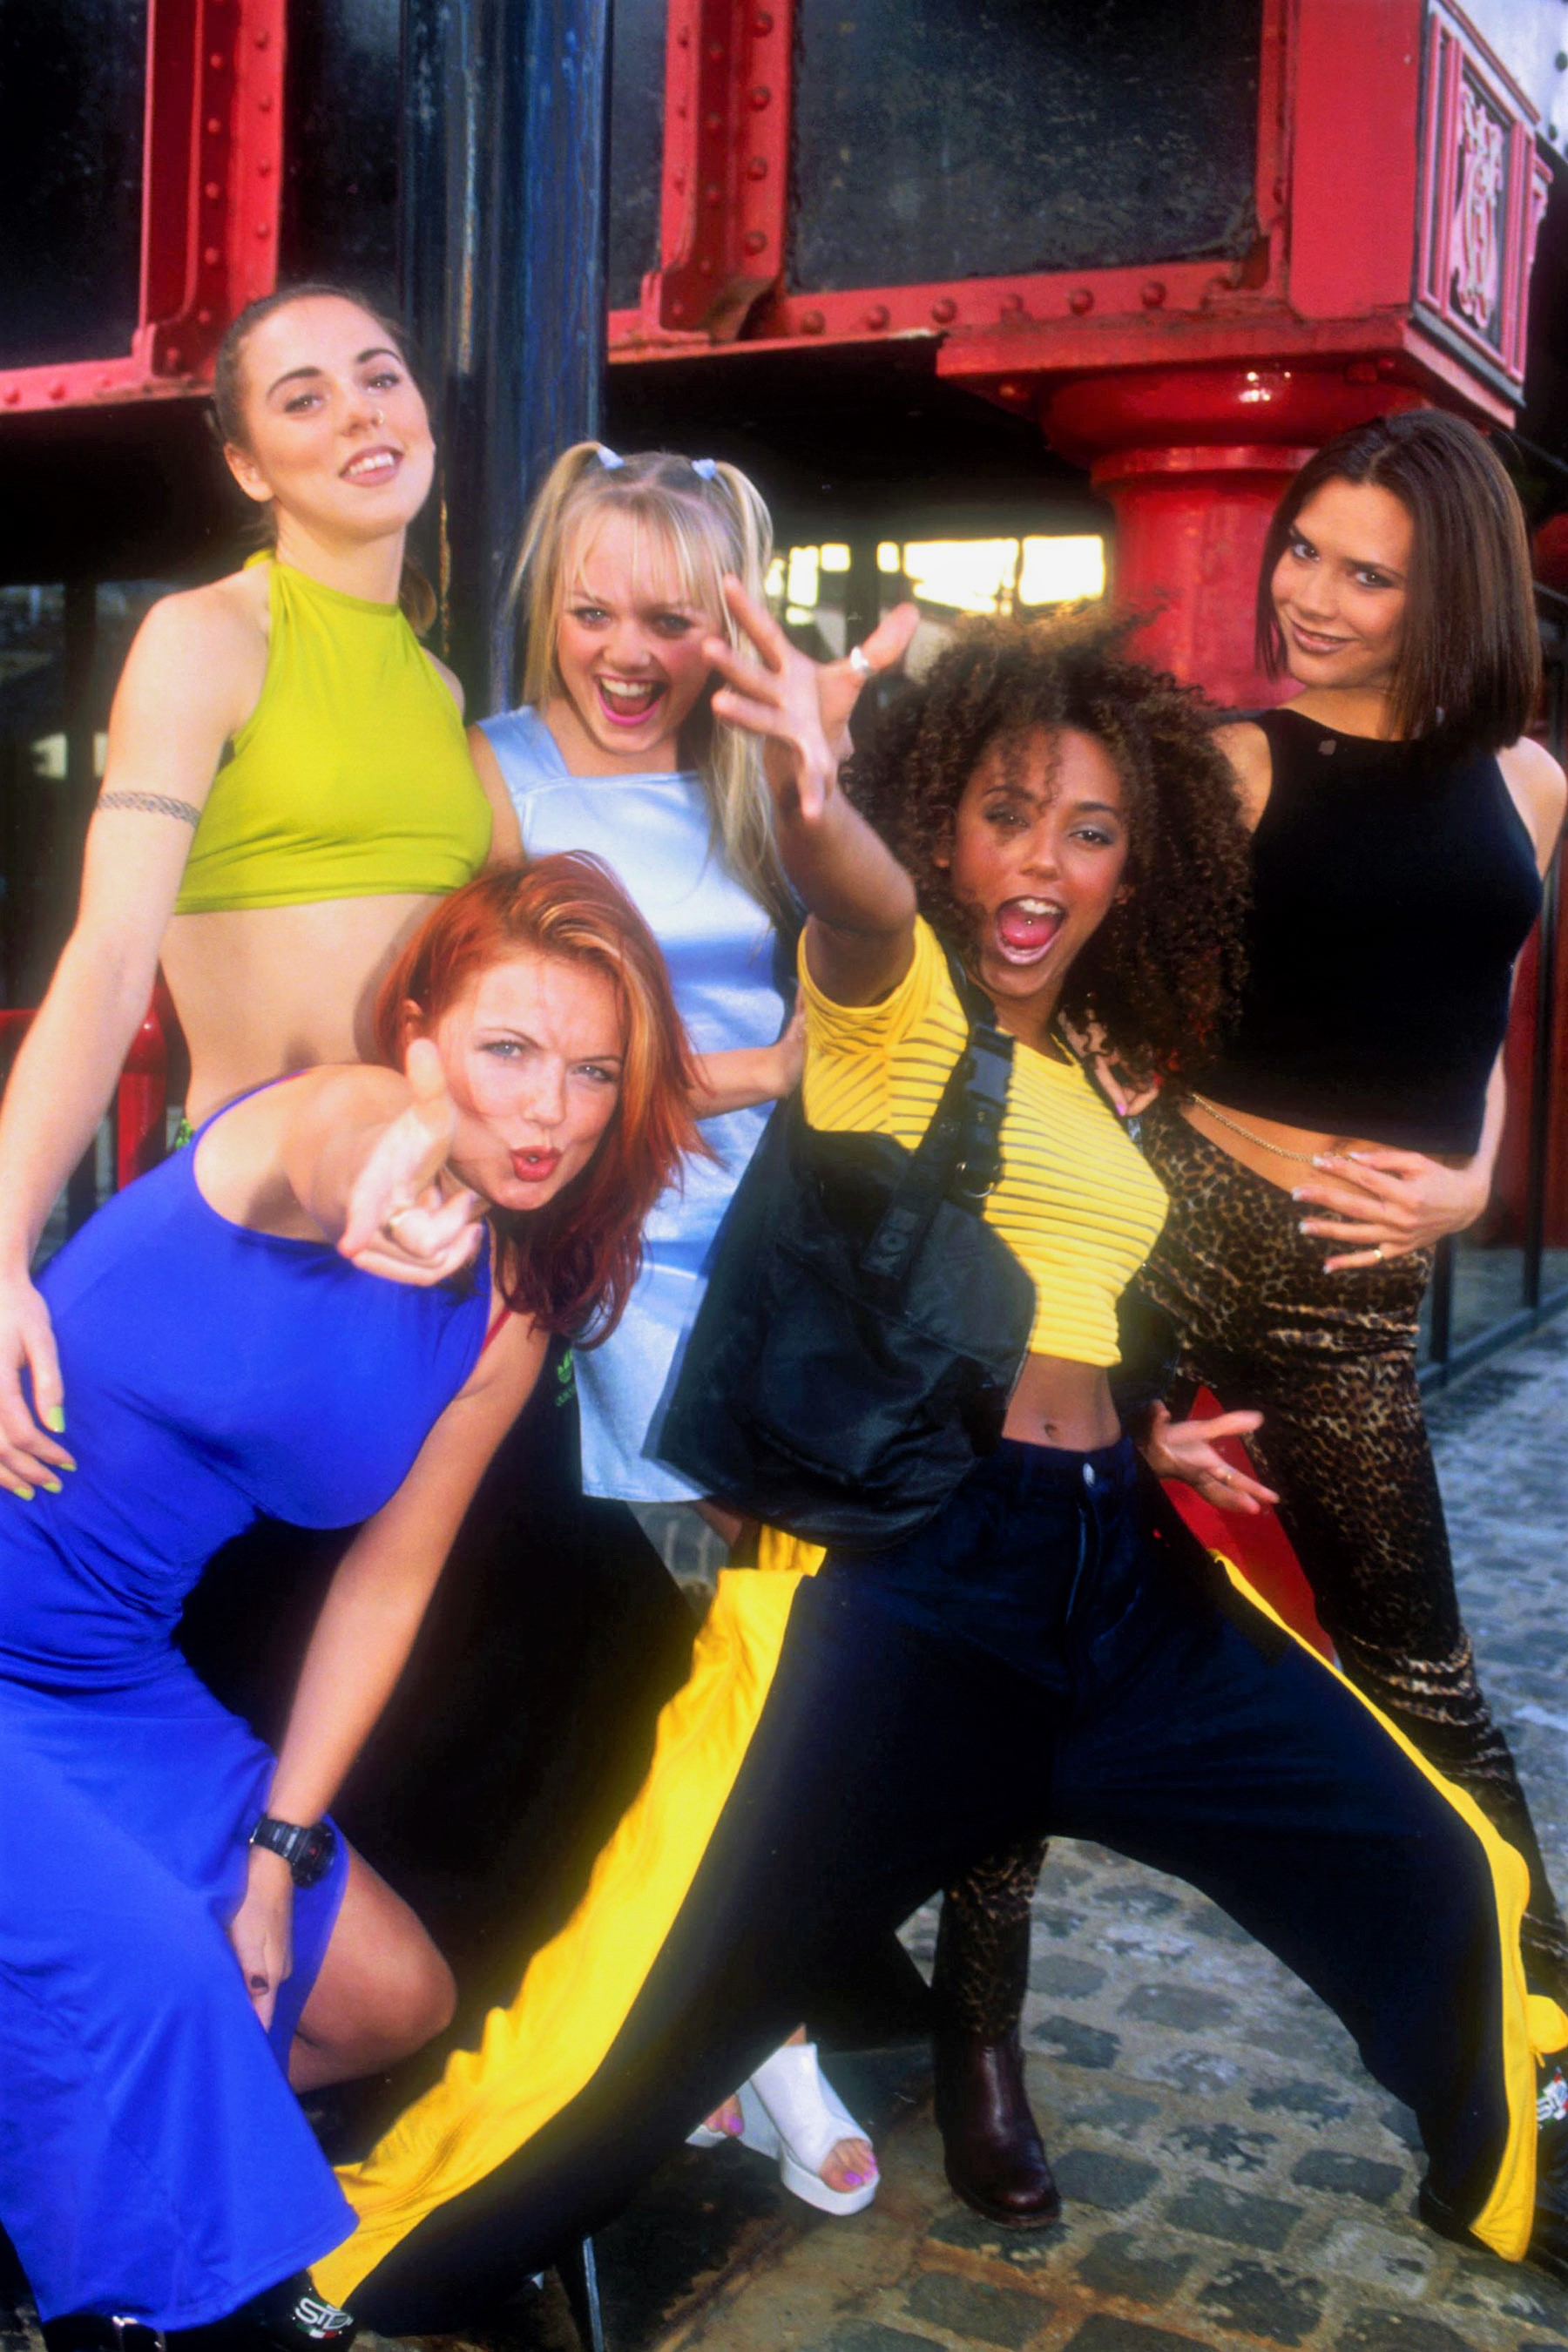 A New Spice Girls Movie Is in the Works with All Five Members — Yes, Even Posh